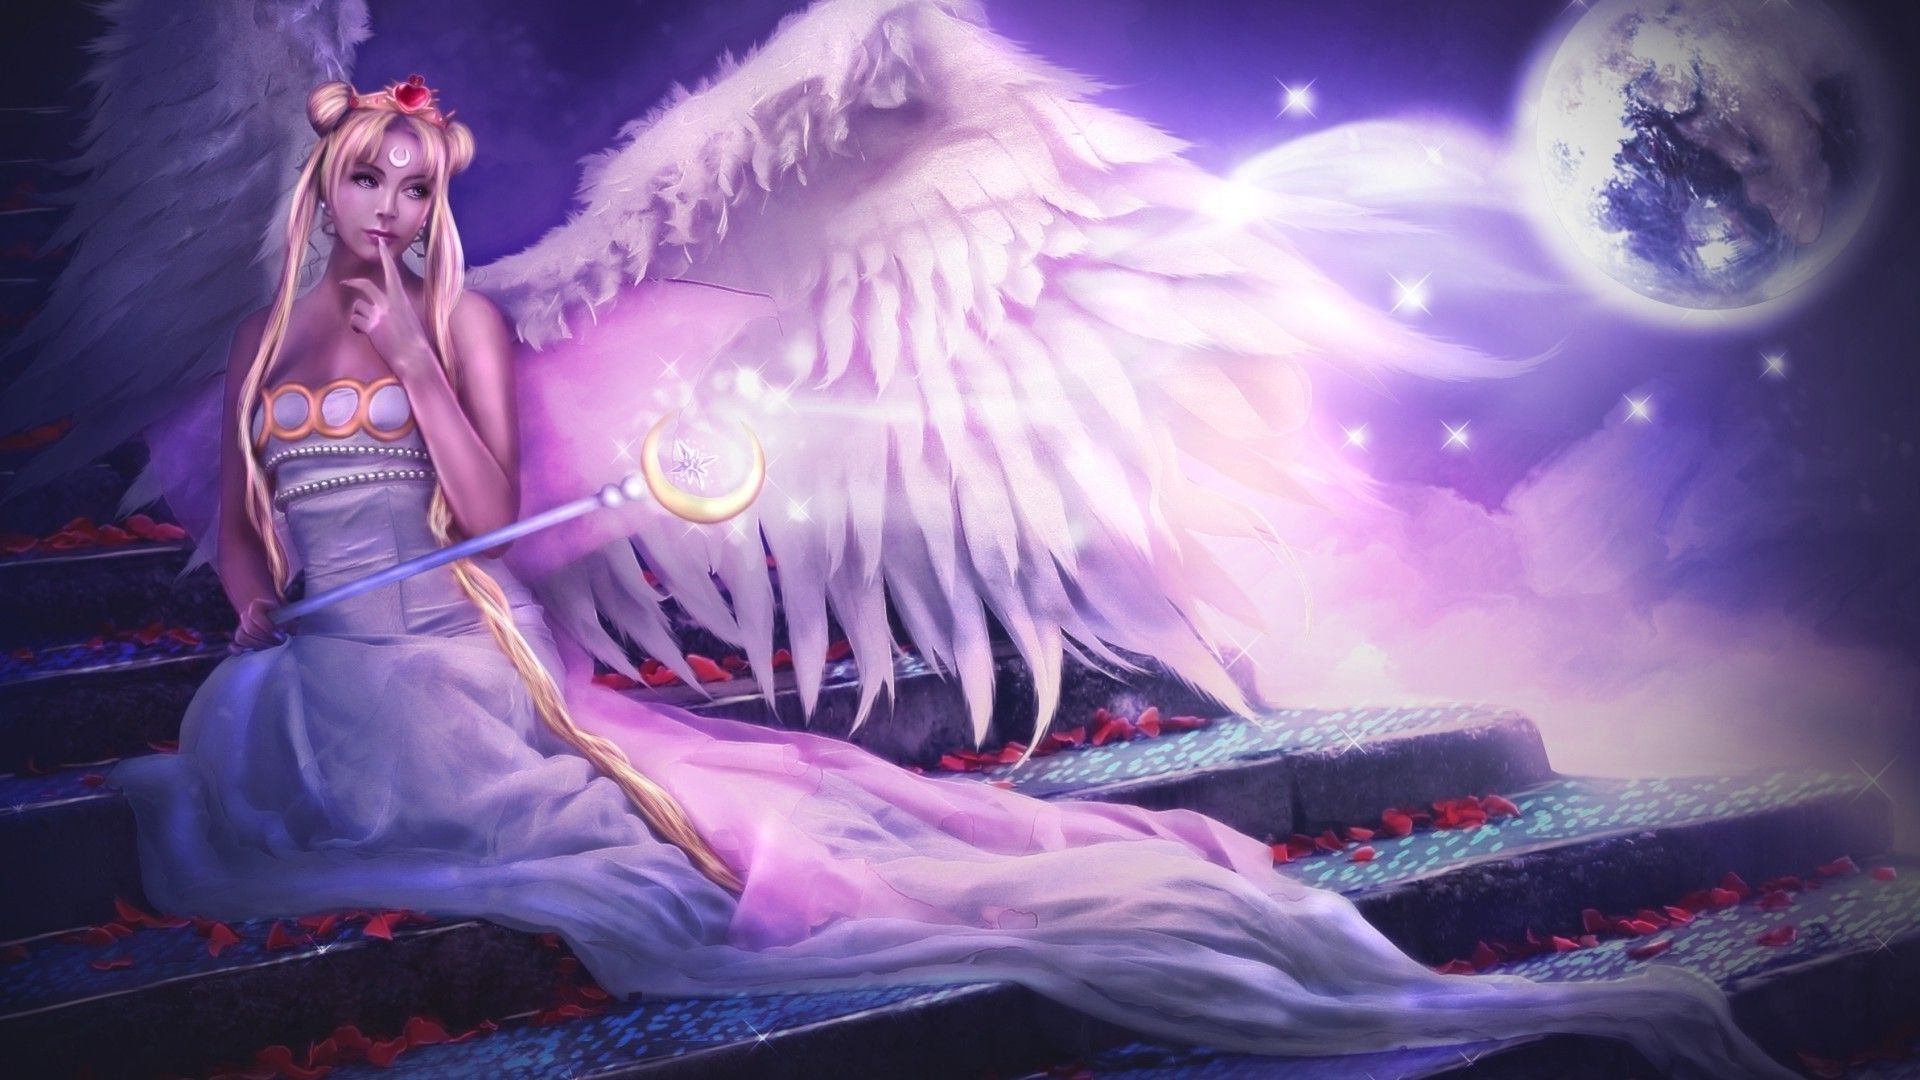 Fantastic Pictures Of Angels